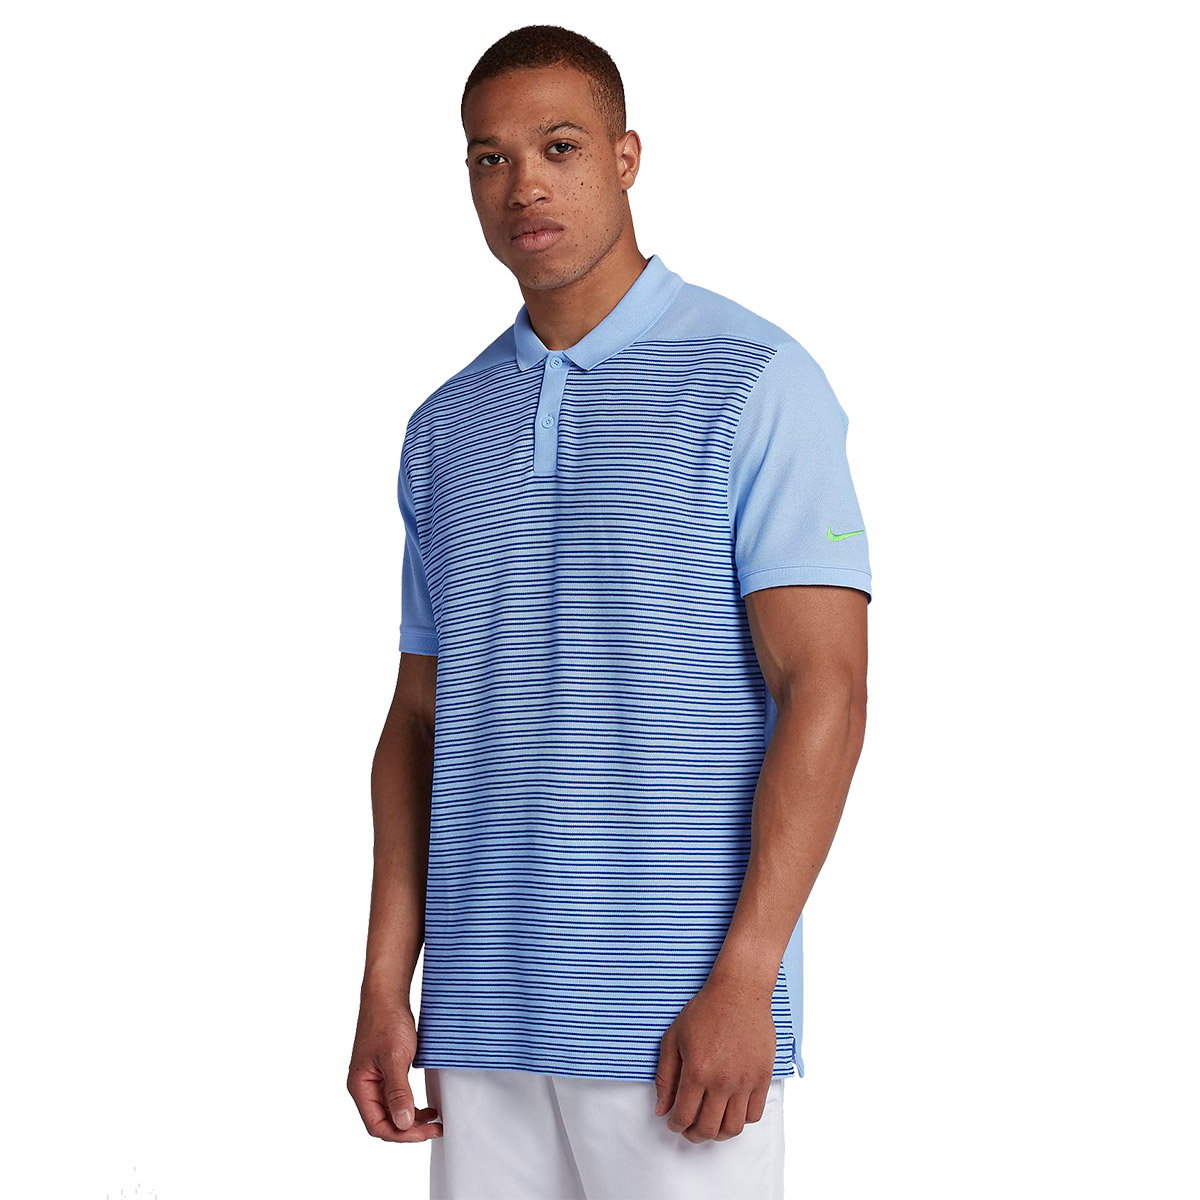 d72be1387fba Nike Golf Classic Stripe Pique Polo Shirt